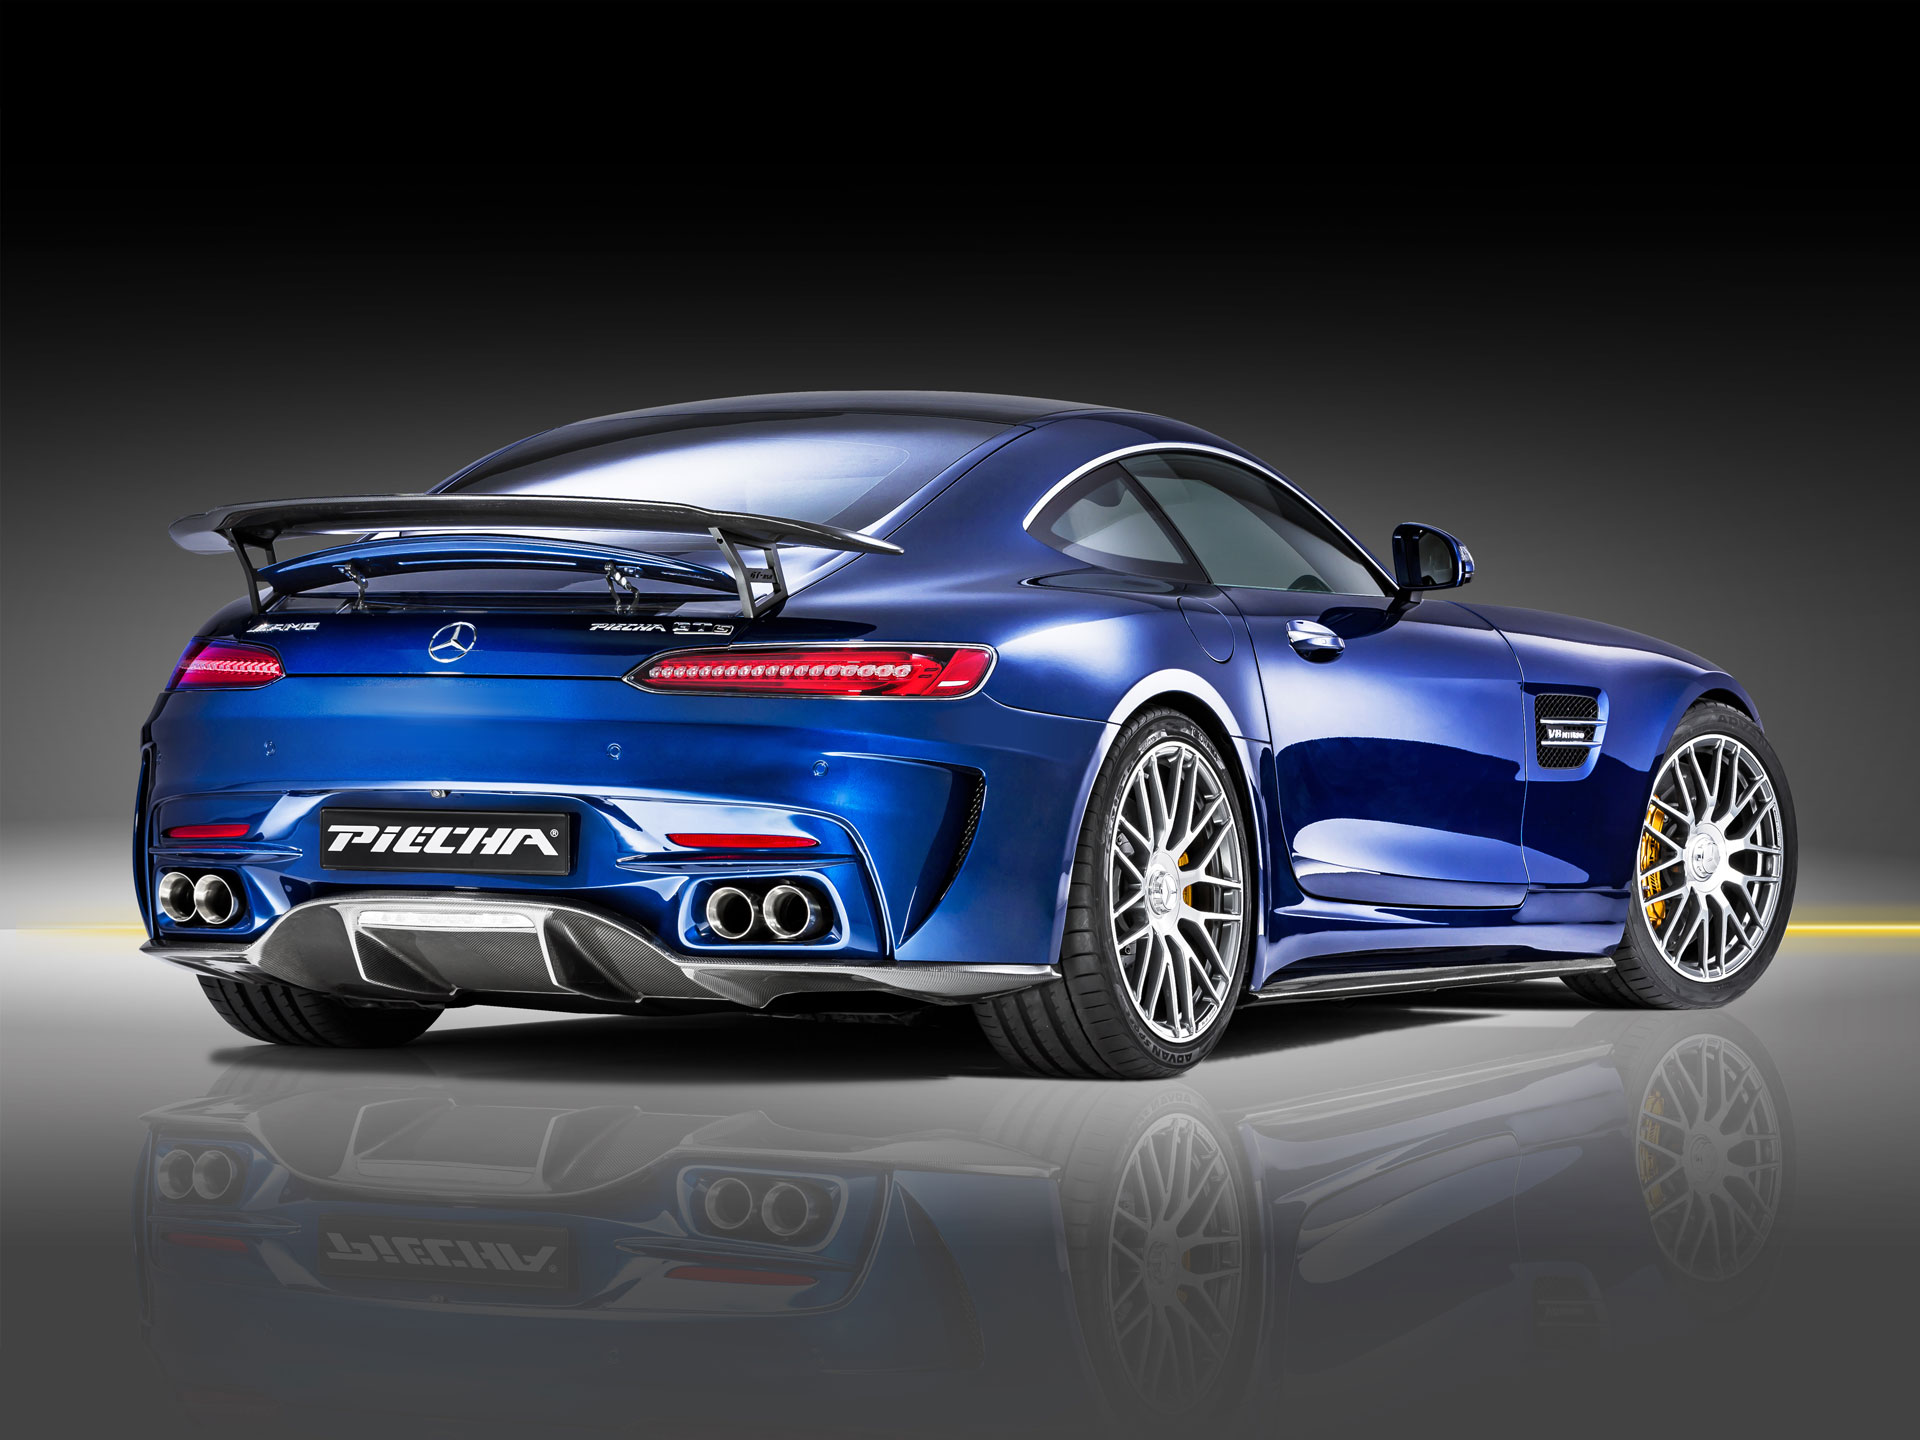 piecha amg gt rsr is not your regular mercedes amg gt s autoevolution. Black Bedroom Furniture Sets. Home Design Ideas